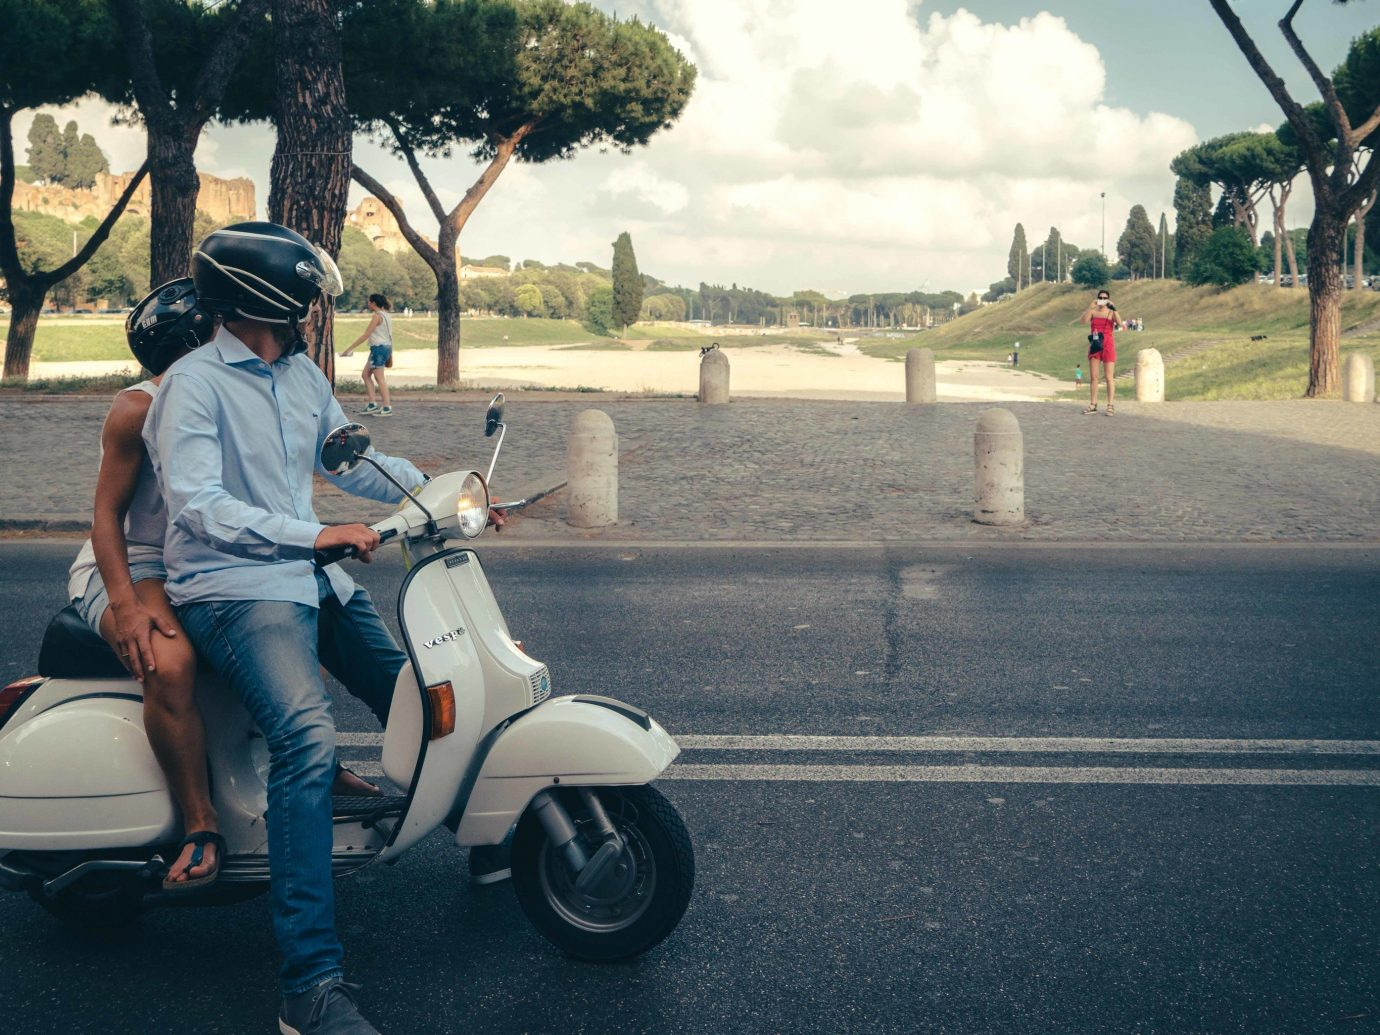 Trip Ideas outdoor road tree sky land vehicle car scooter vehicle motorcycle mode of transport motor vehicle transport snapshot vespa street girl wheel vacation